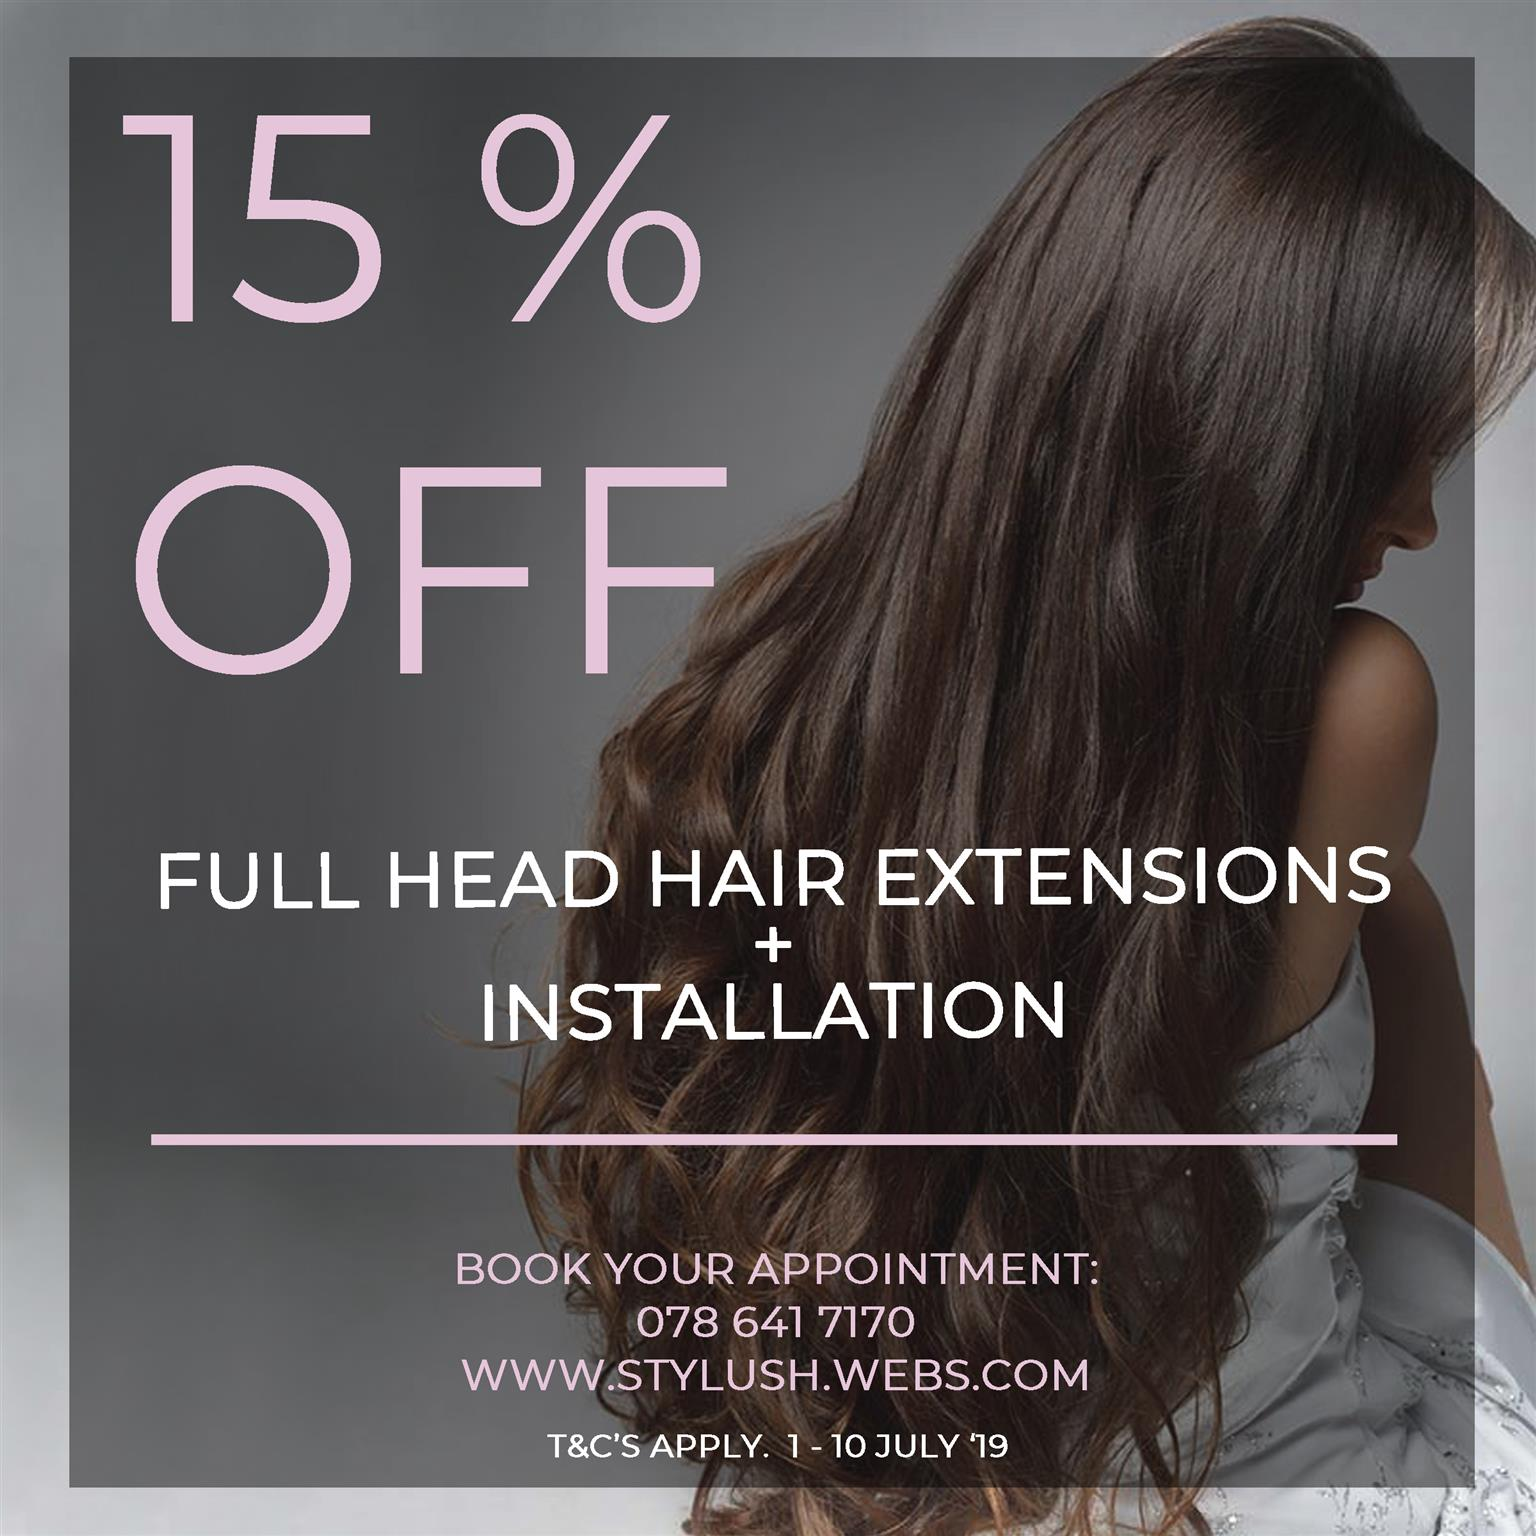 Hair Extensions Products & Services